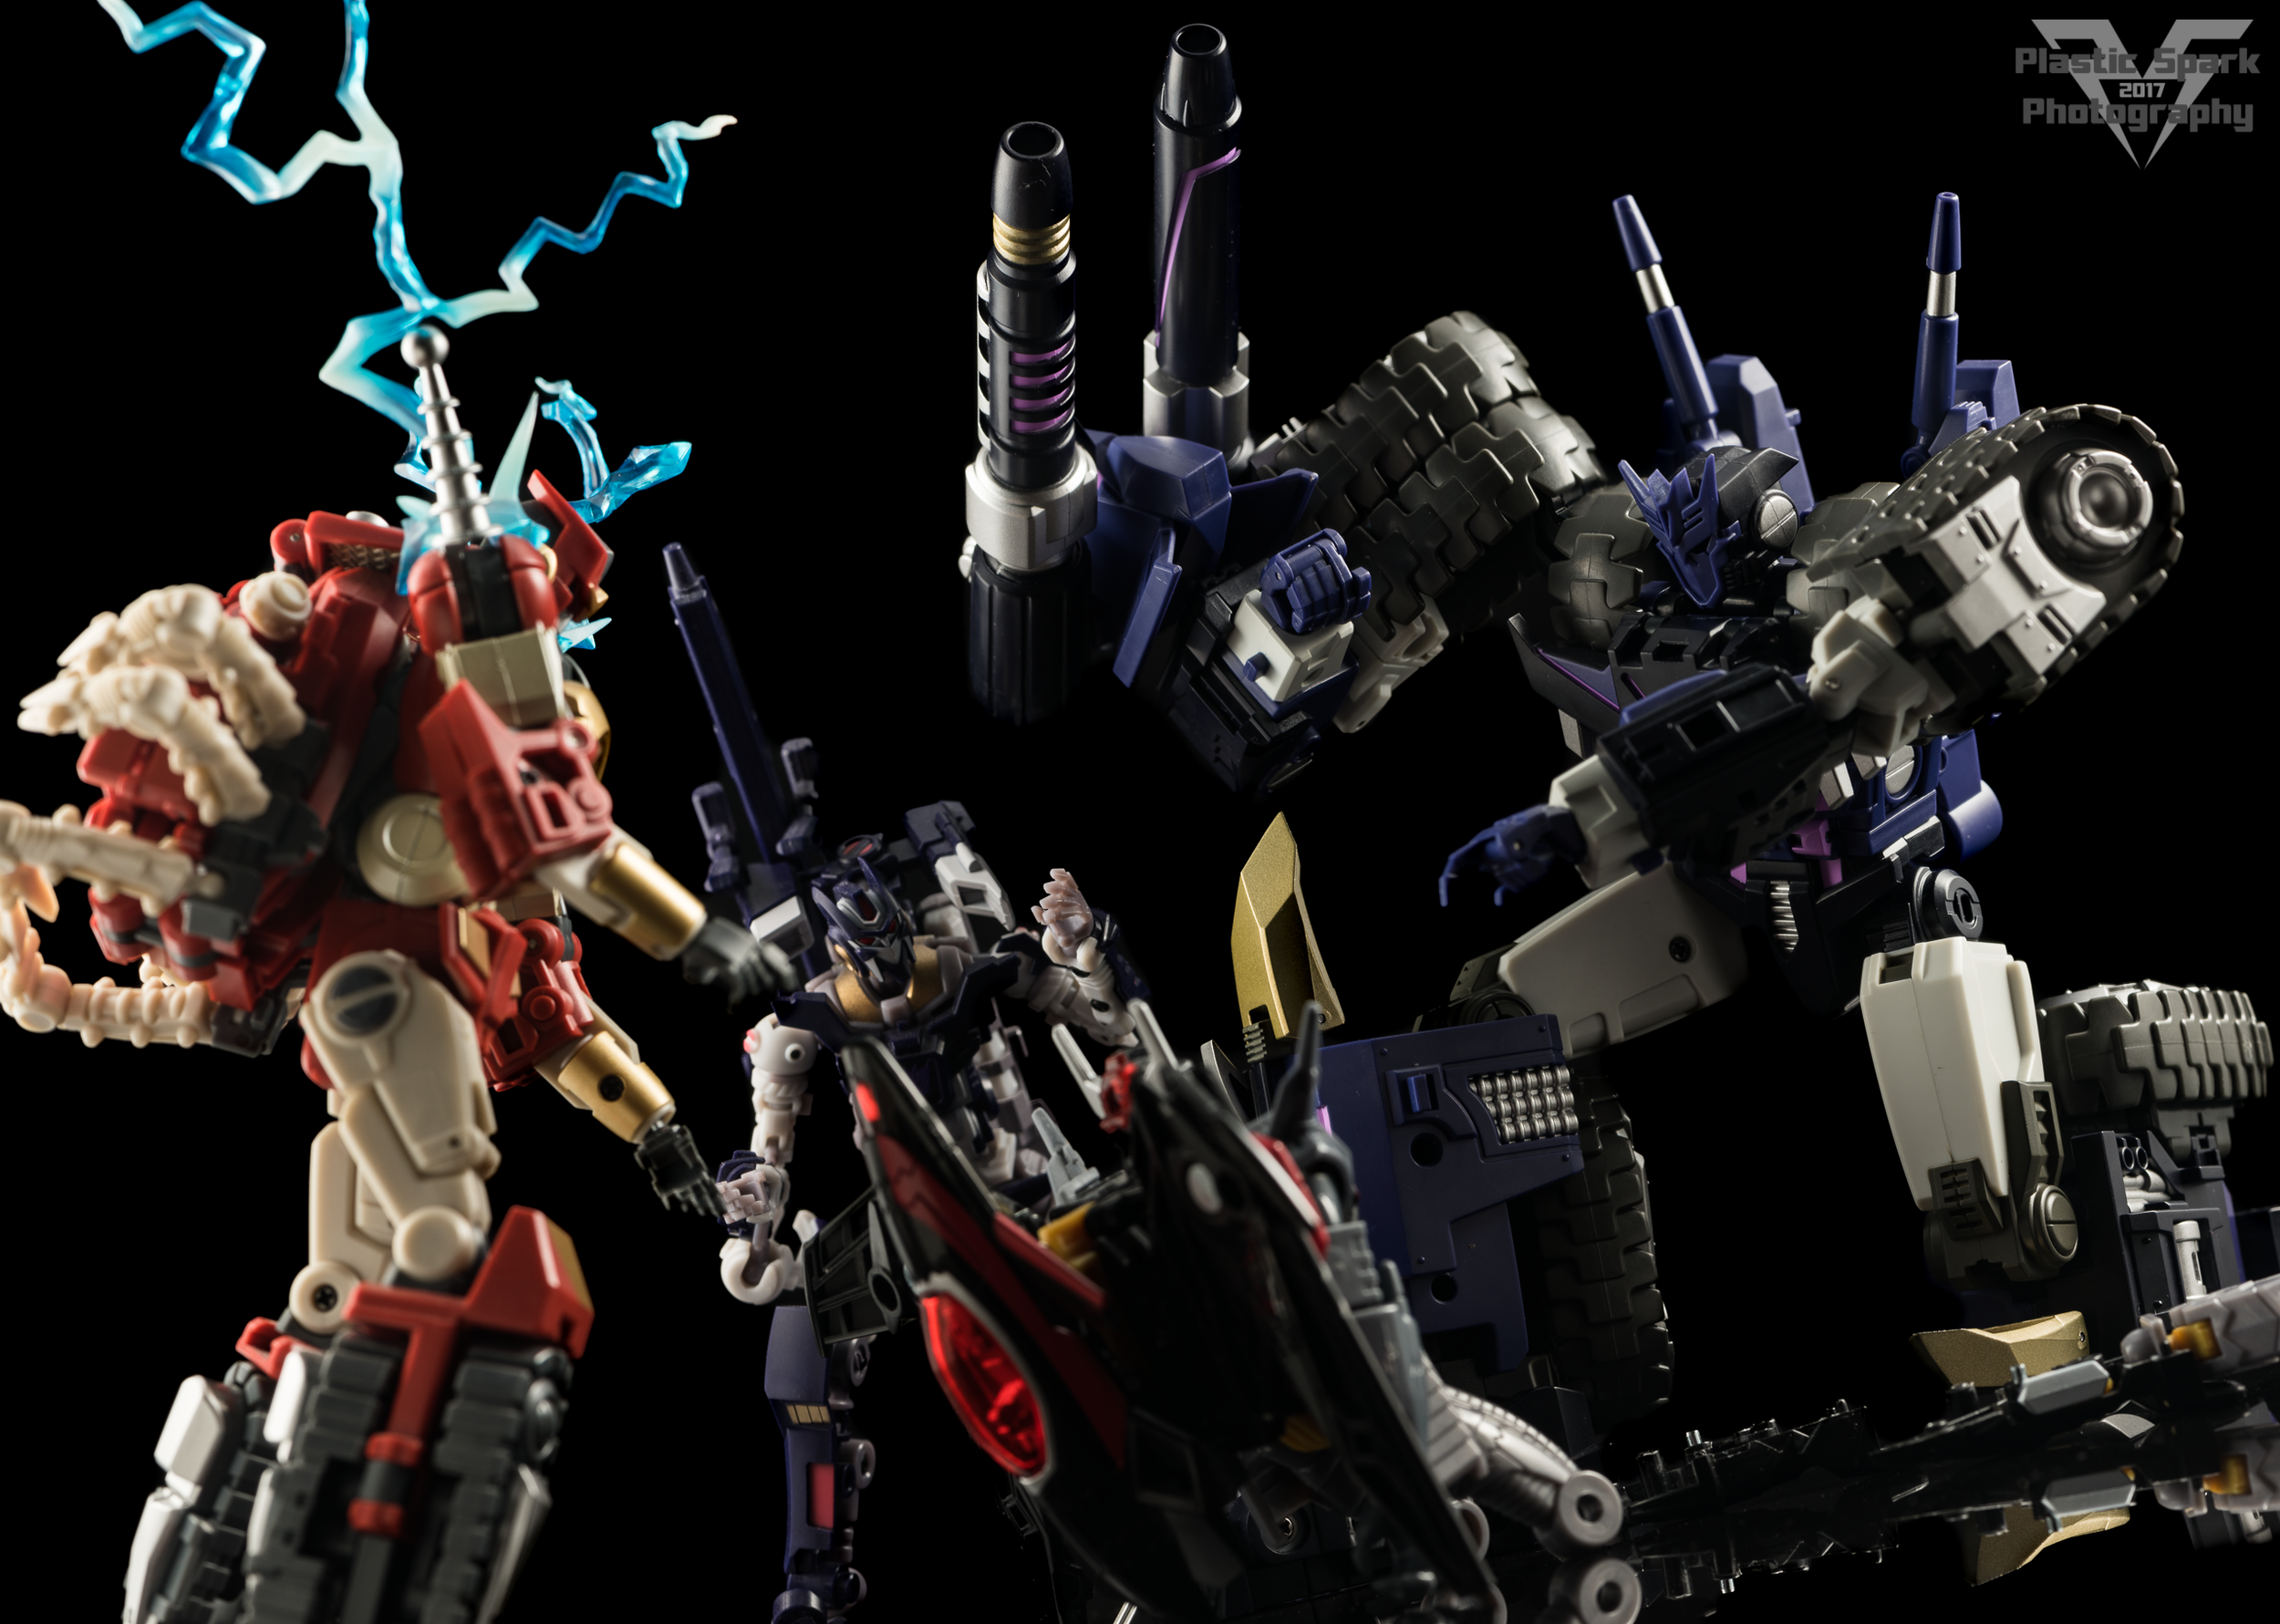 Mastermind-Creations-R-19-Kultur-(14-of-24).png